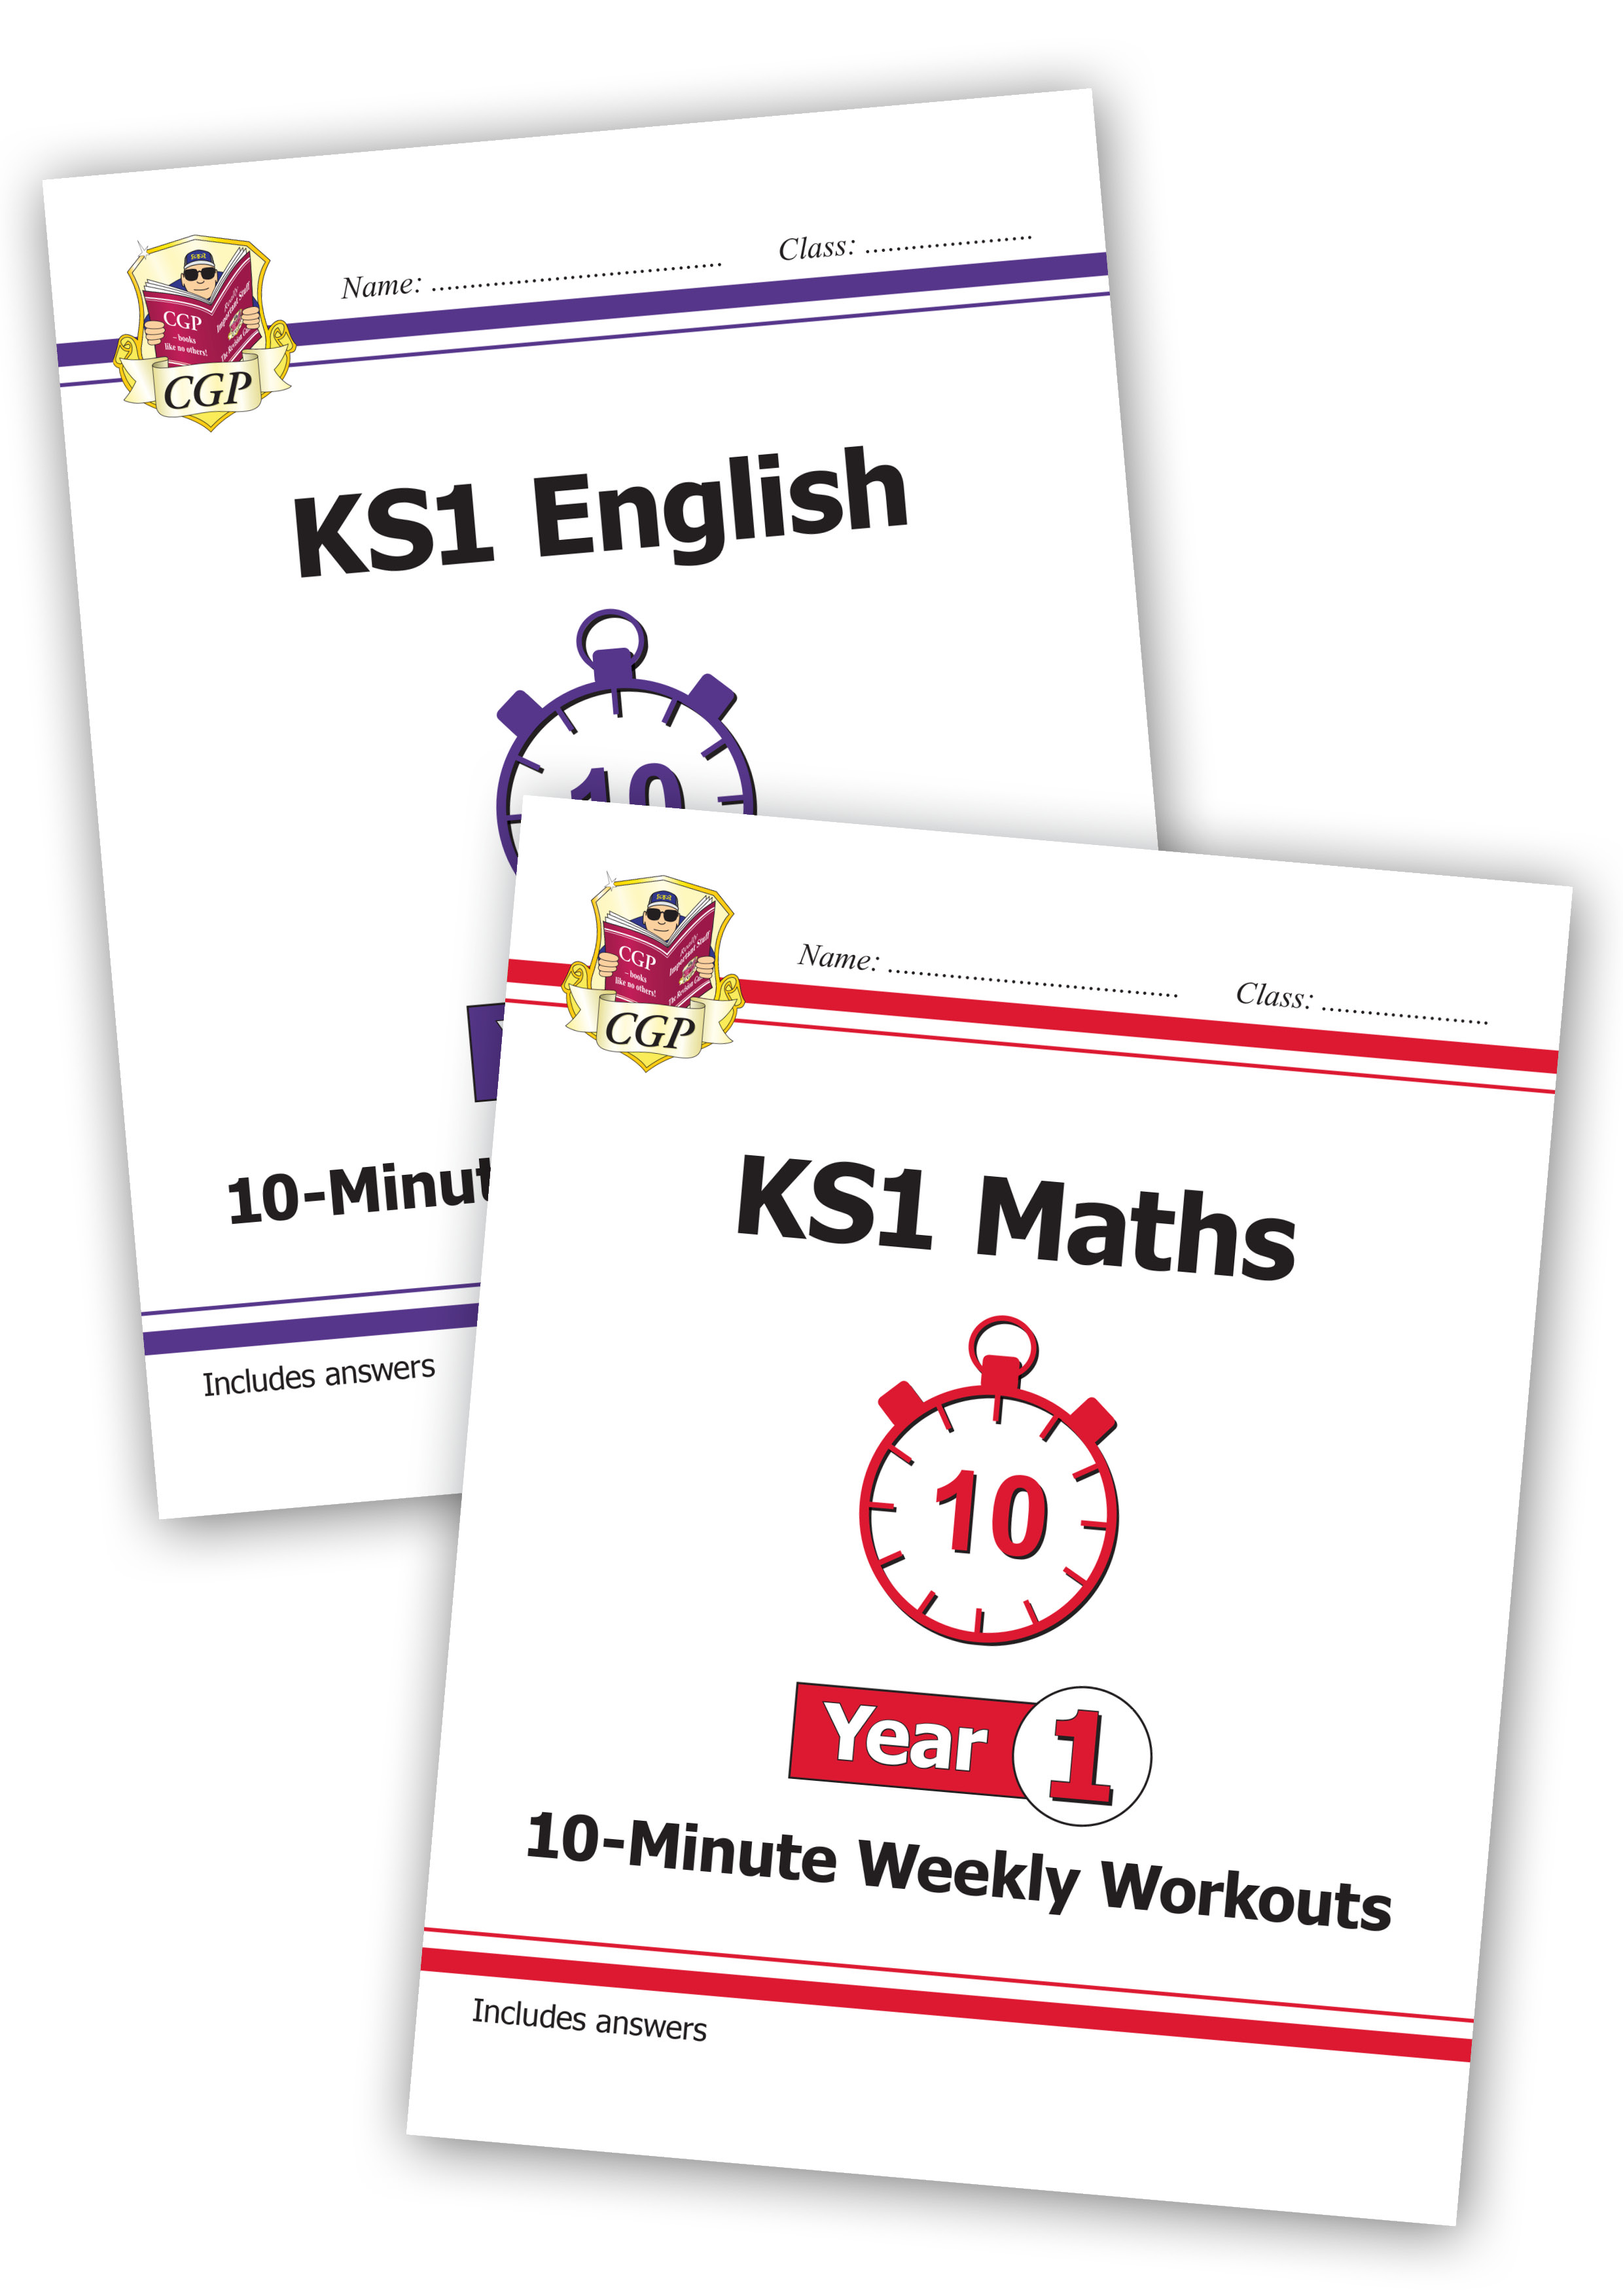 EM1XWB11 - New KS1 Maths and English 10-Minute Weekly Workouts Bundle - Year 1